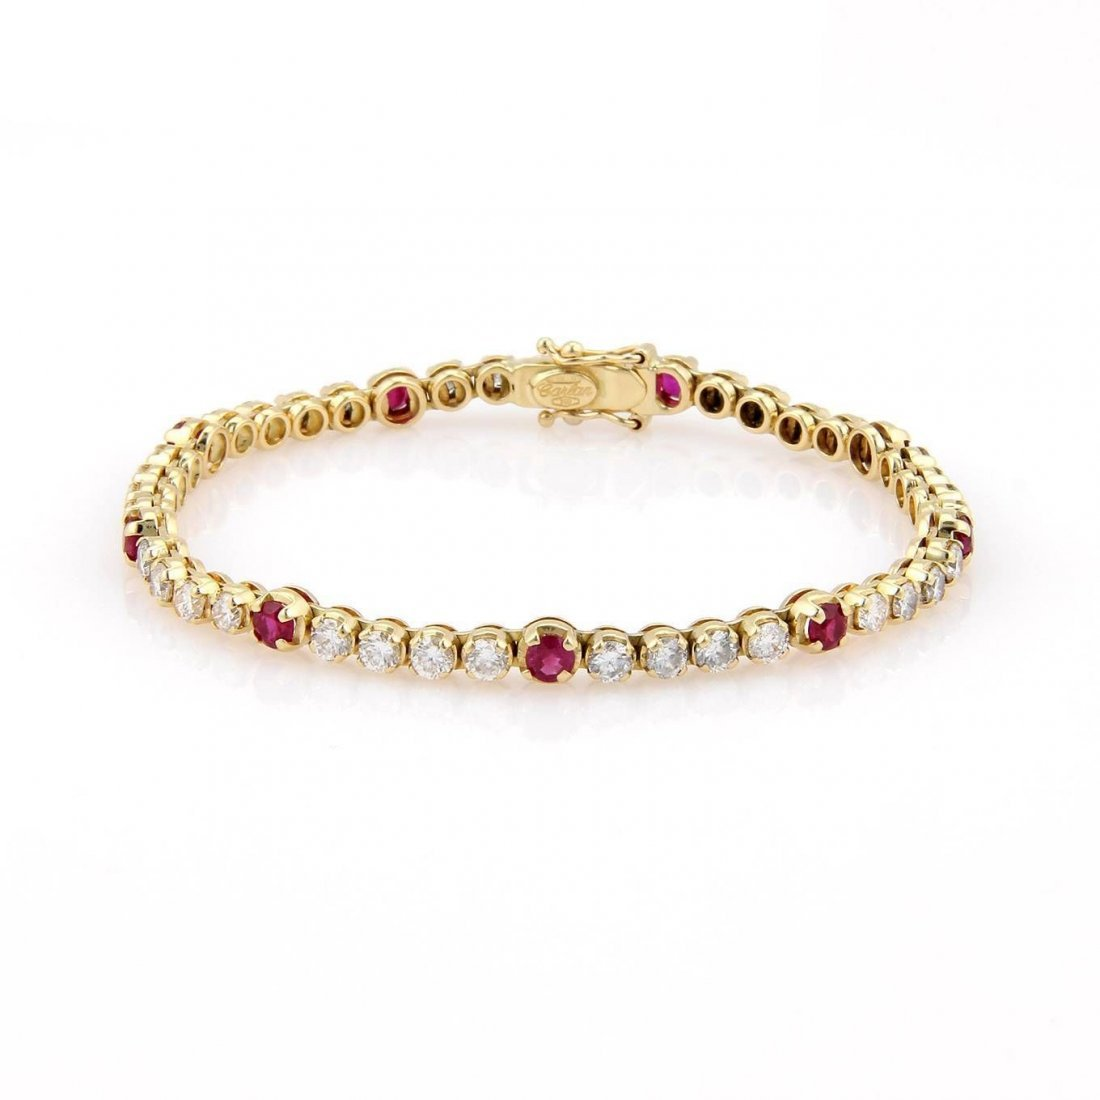 18K Yellow Gold 5.10ctw Diamond & Ruby Tennis Bracelet